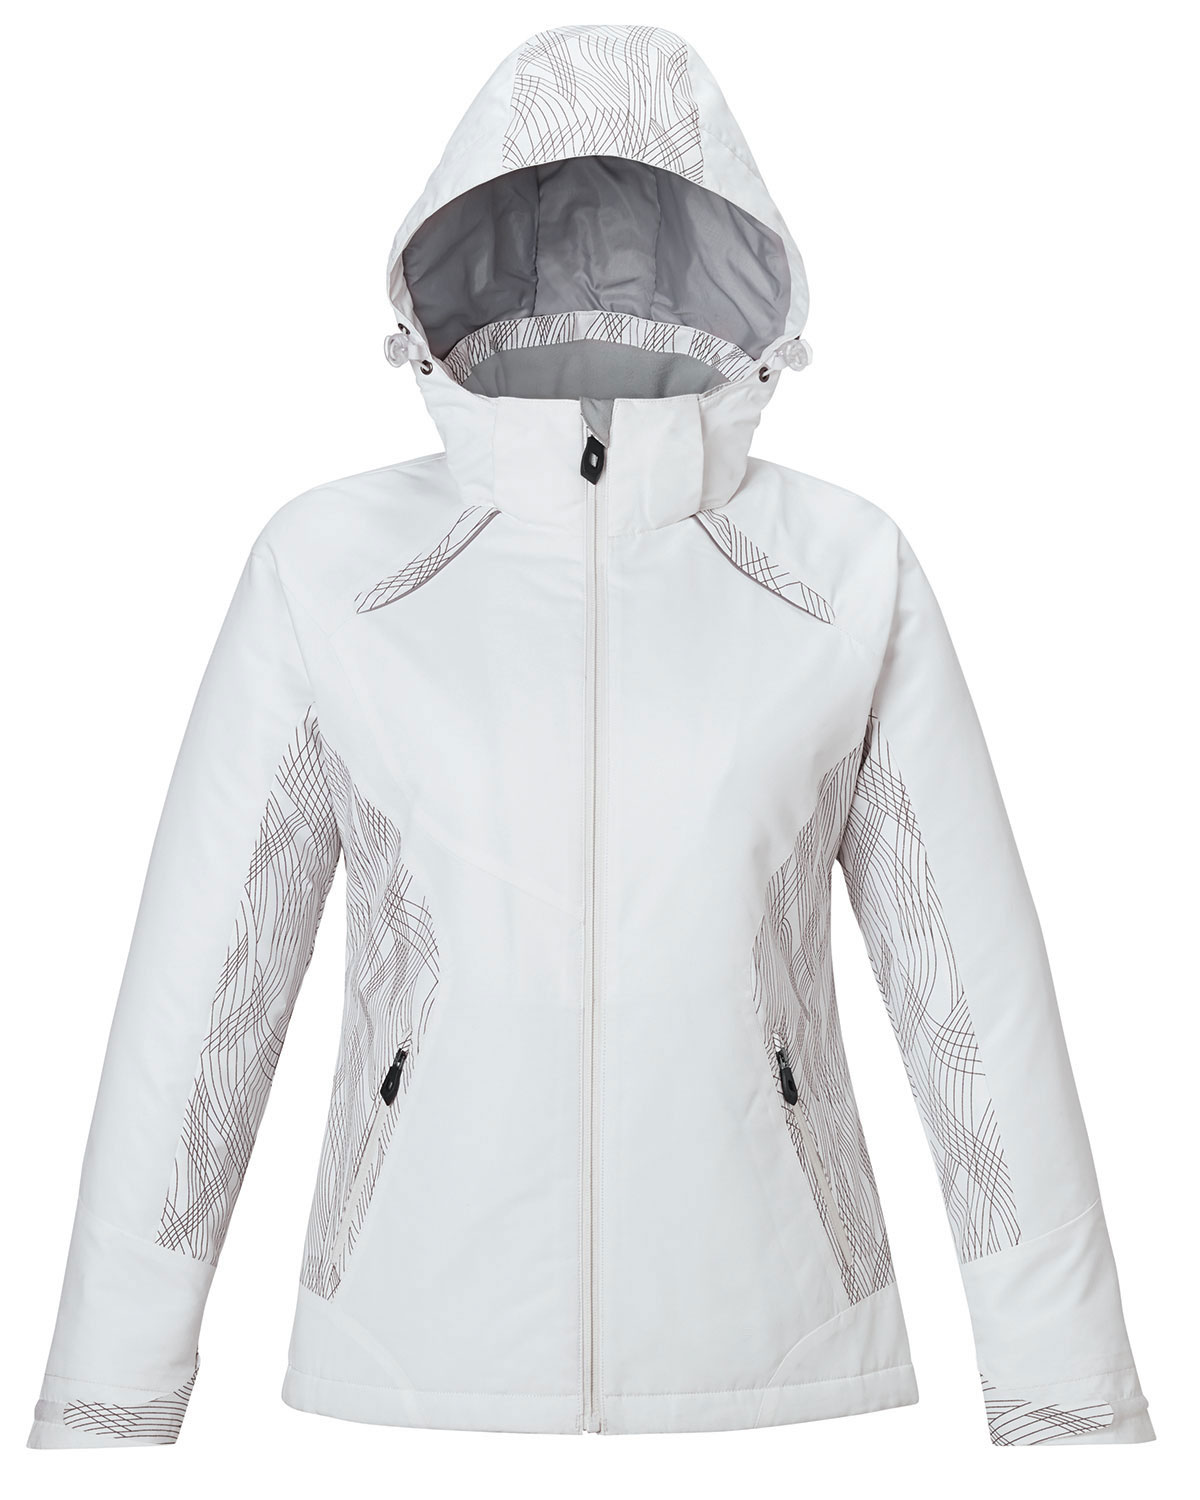 Womens Insulated Jacket with Print